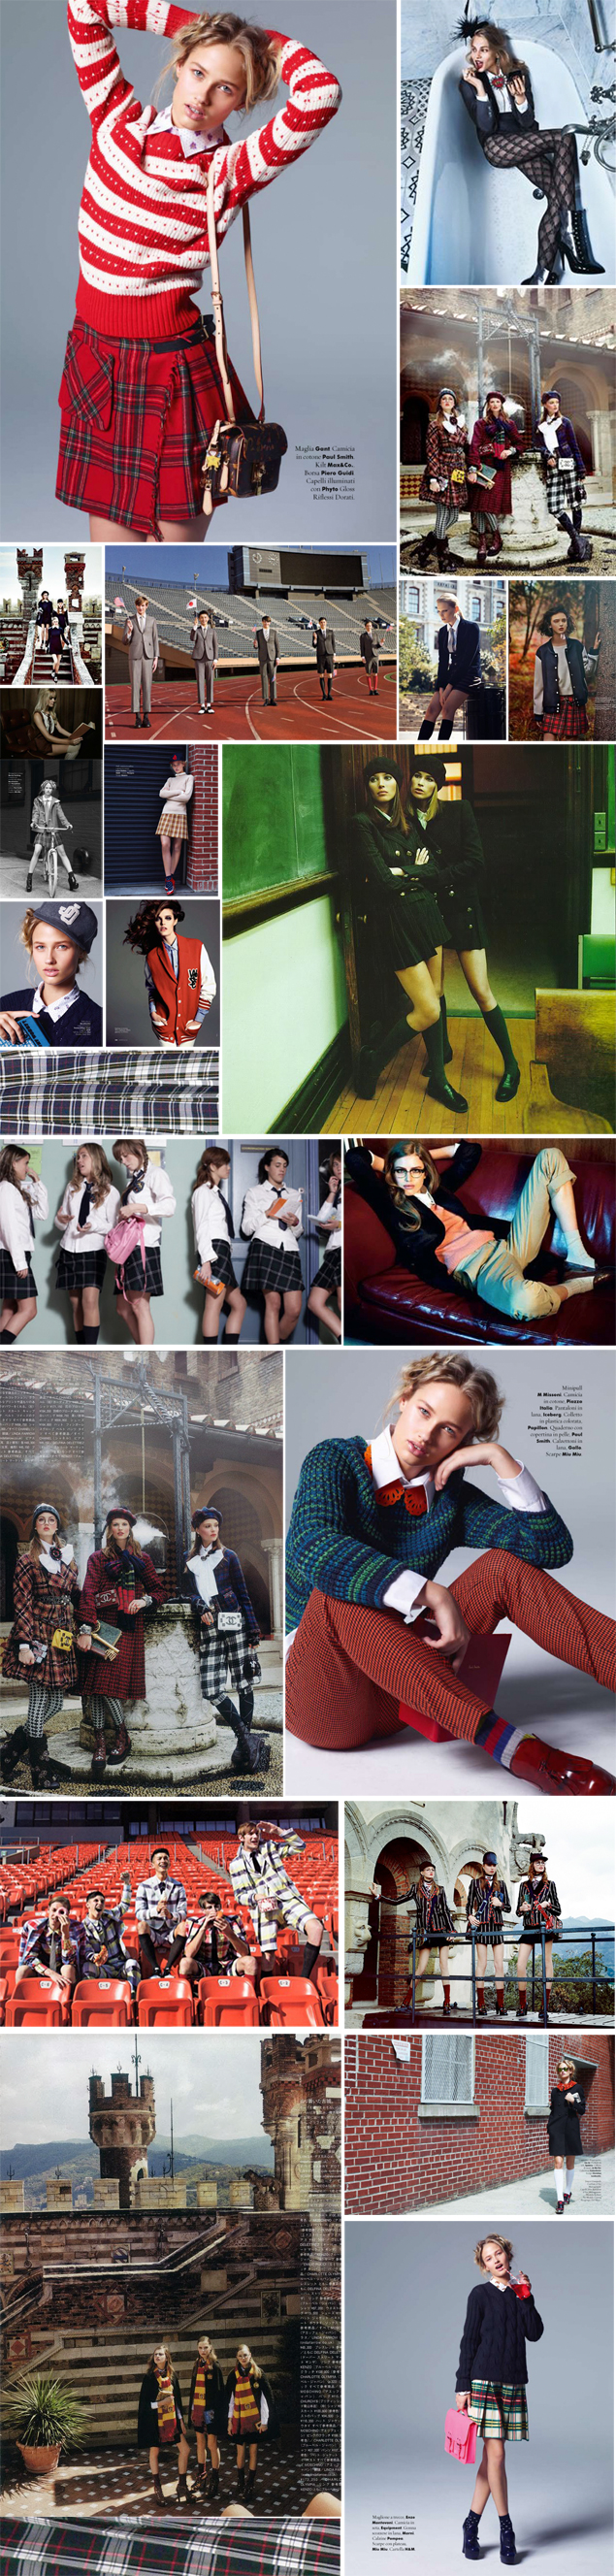 plaid uniform editorial